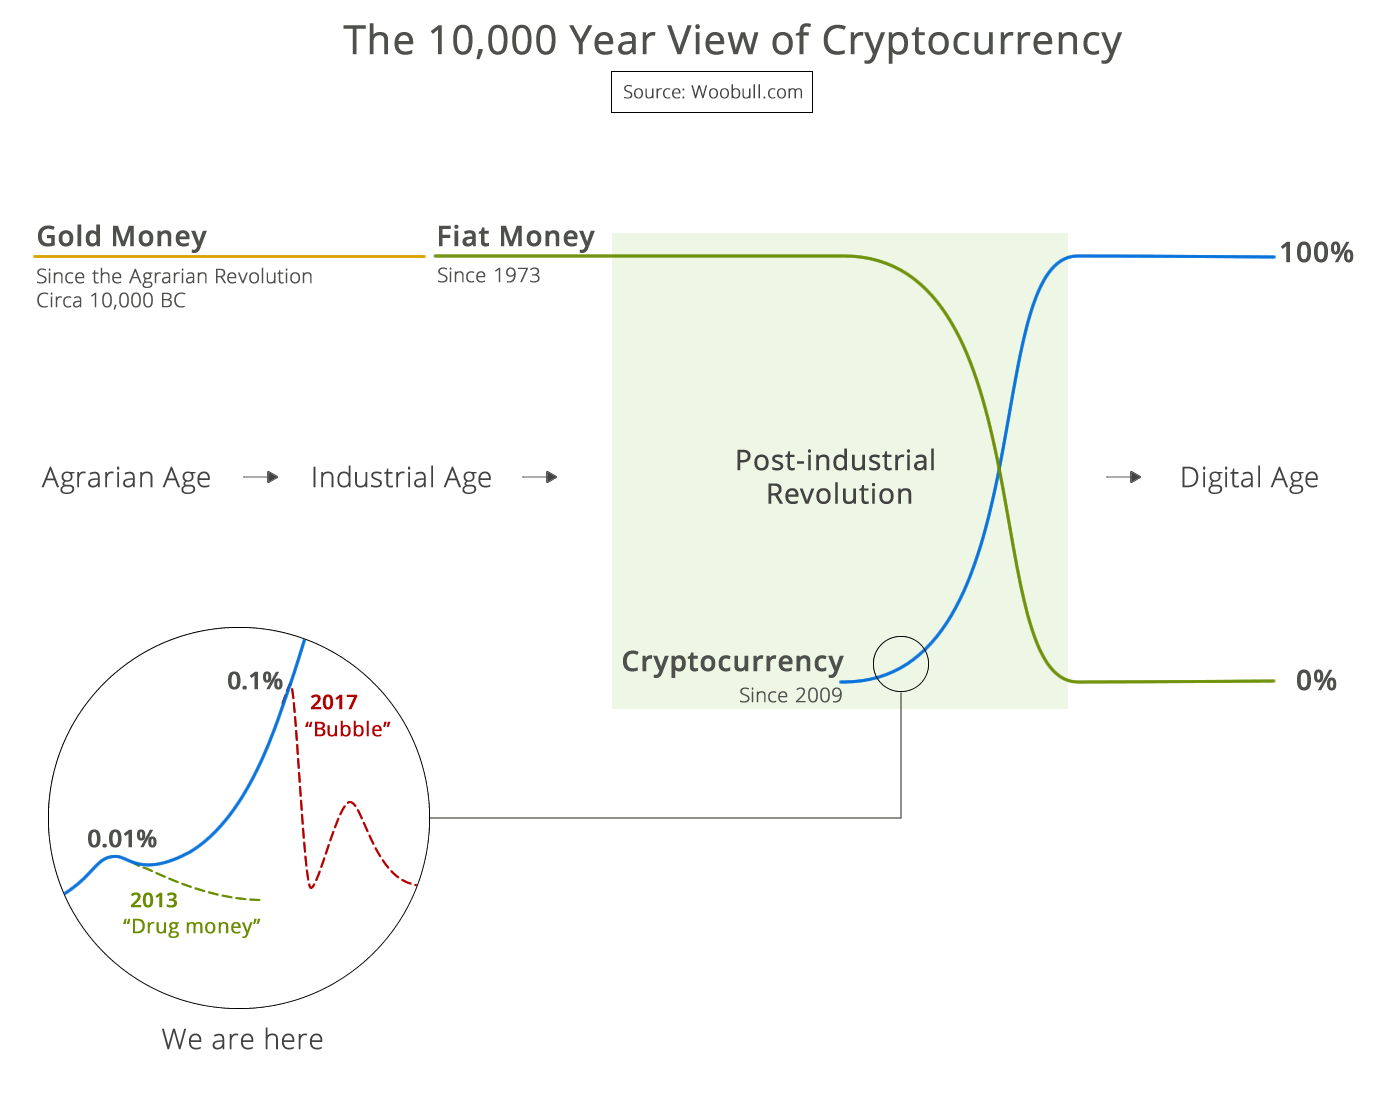 The 10,000 year view of cryptocurrency